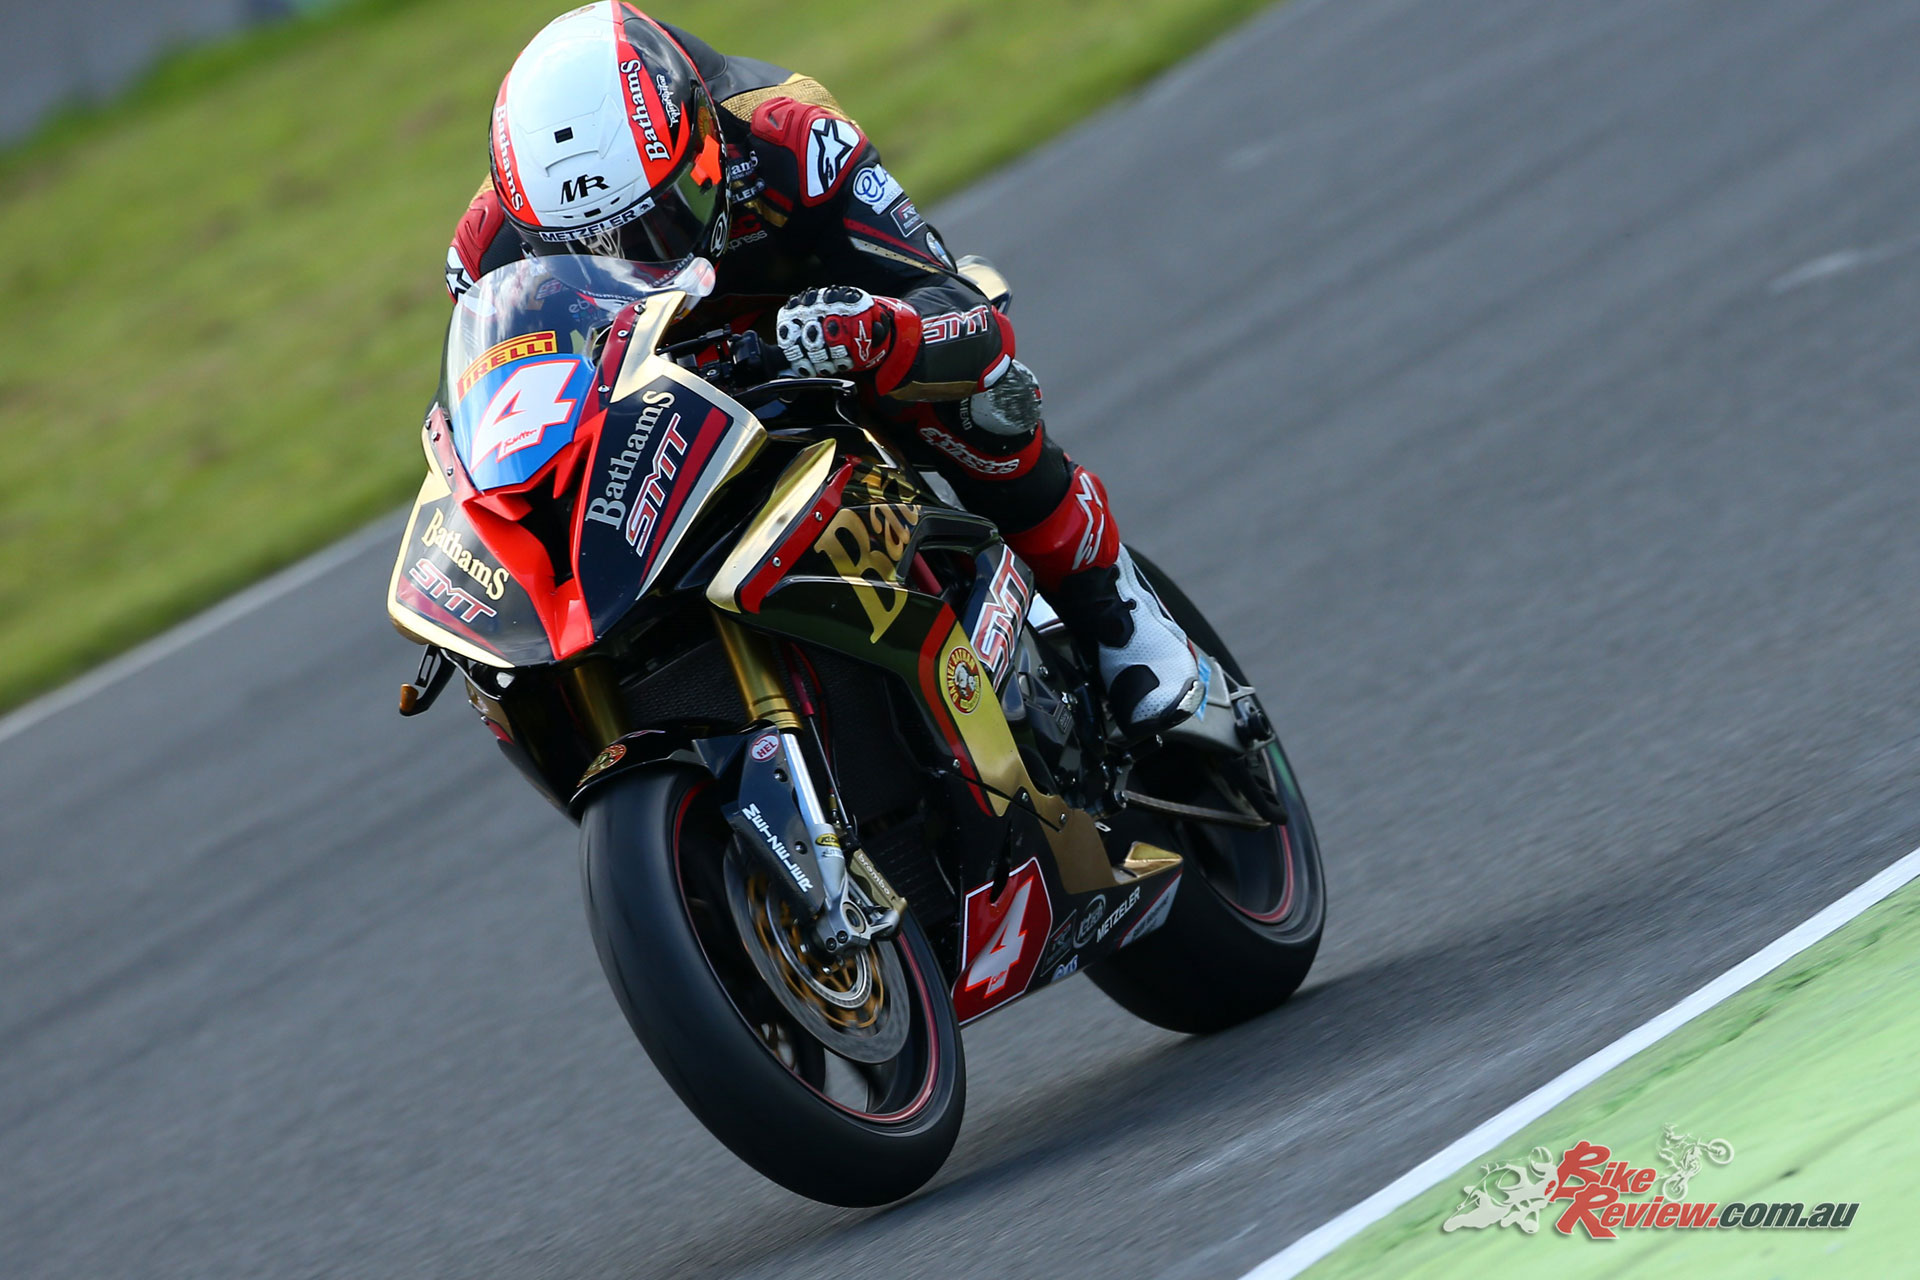 Michael Rutter - Image by Impact Images/2SNAP